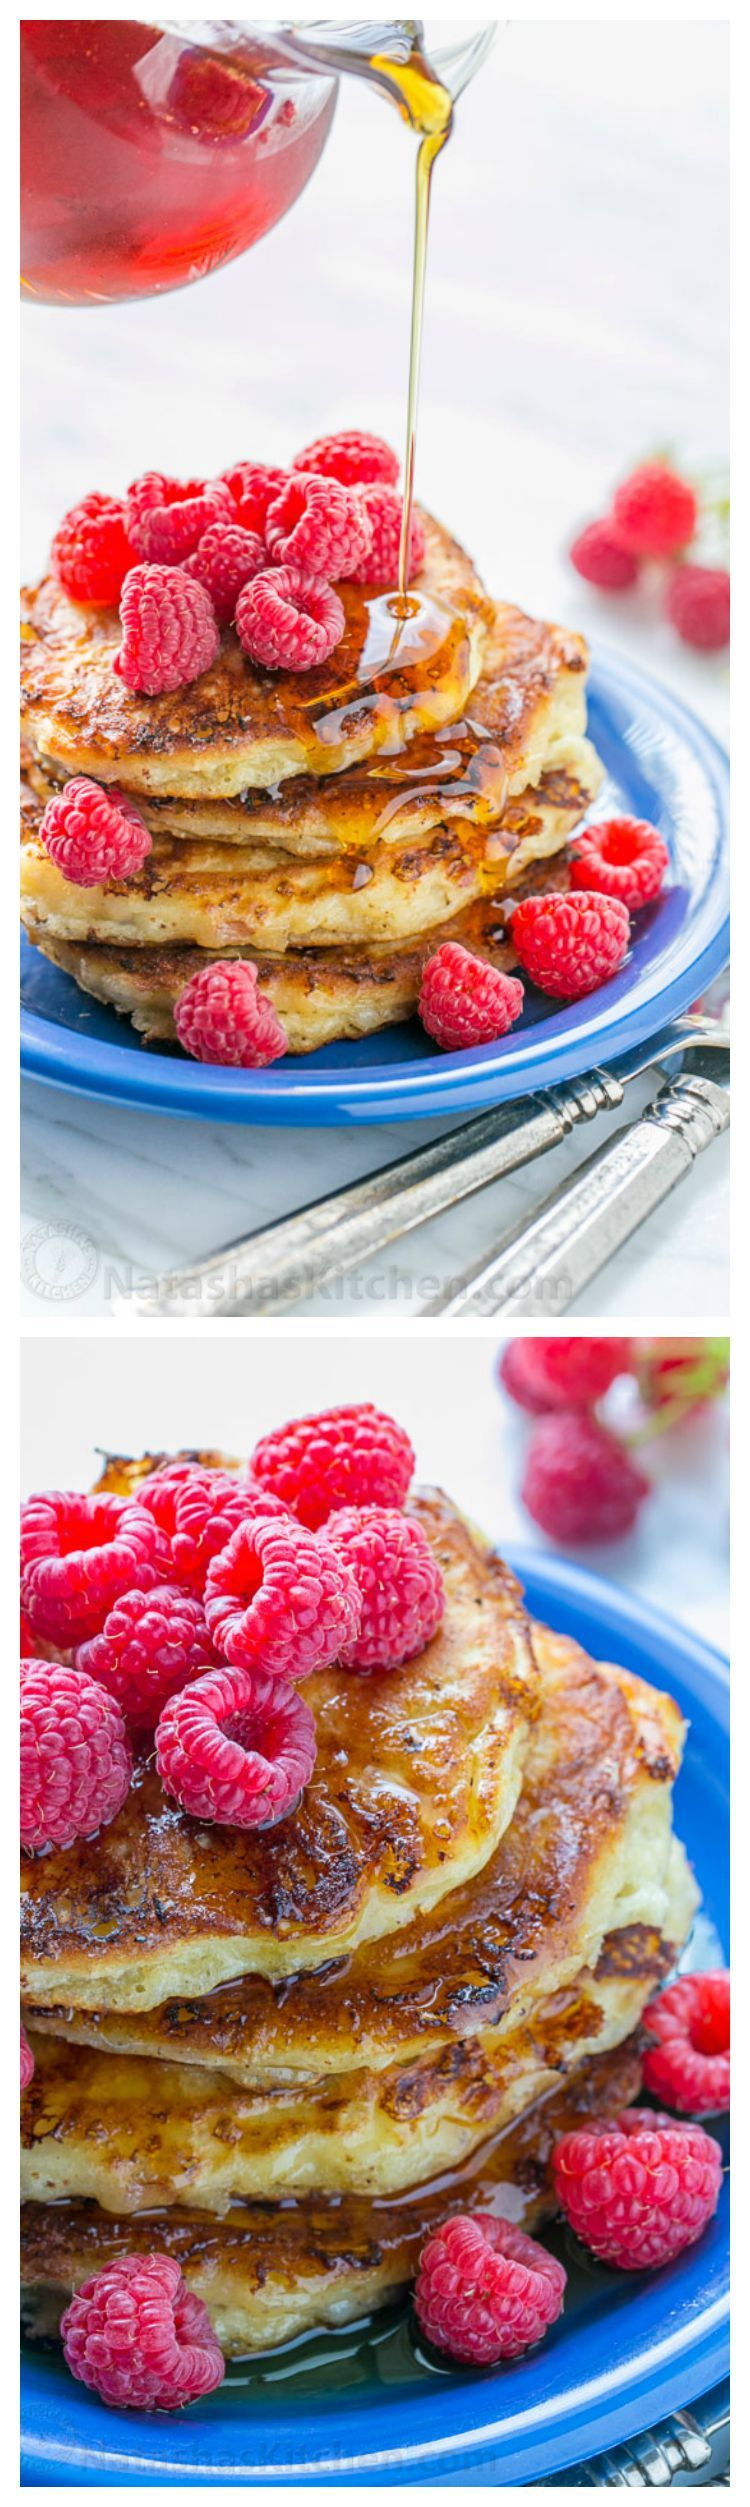 Pancakes with cottage cheese: a recipe for a delicious and simple dessert